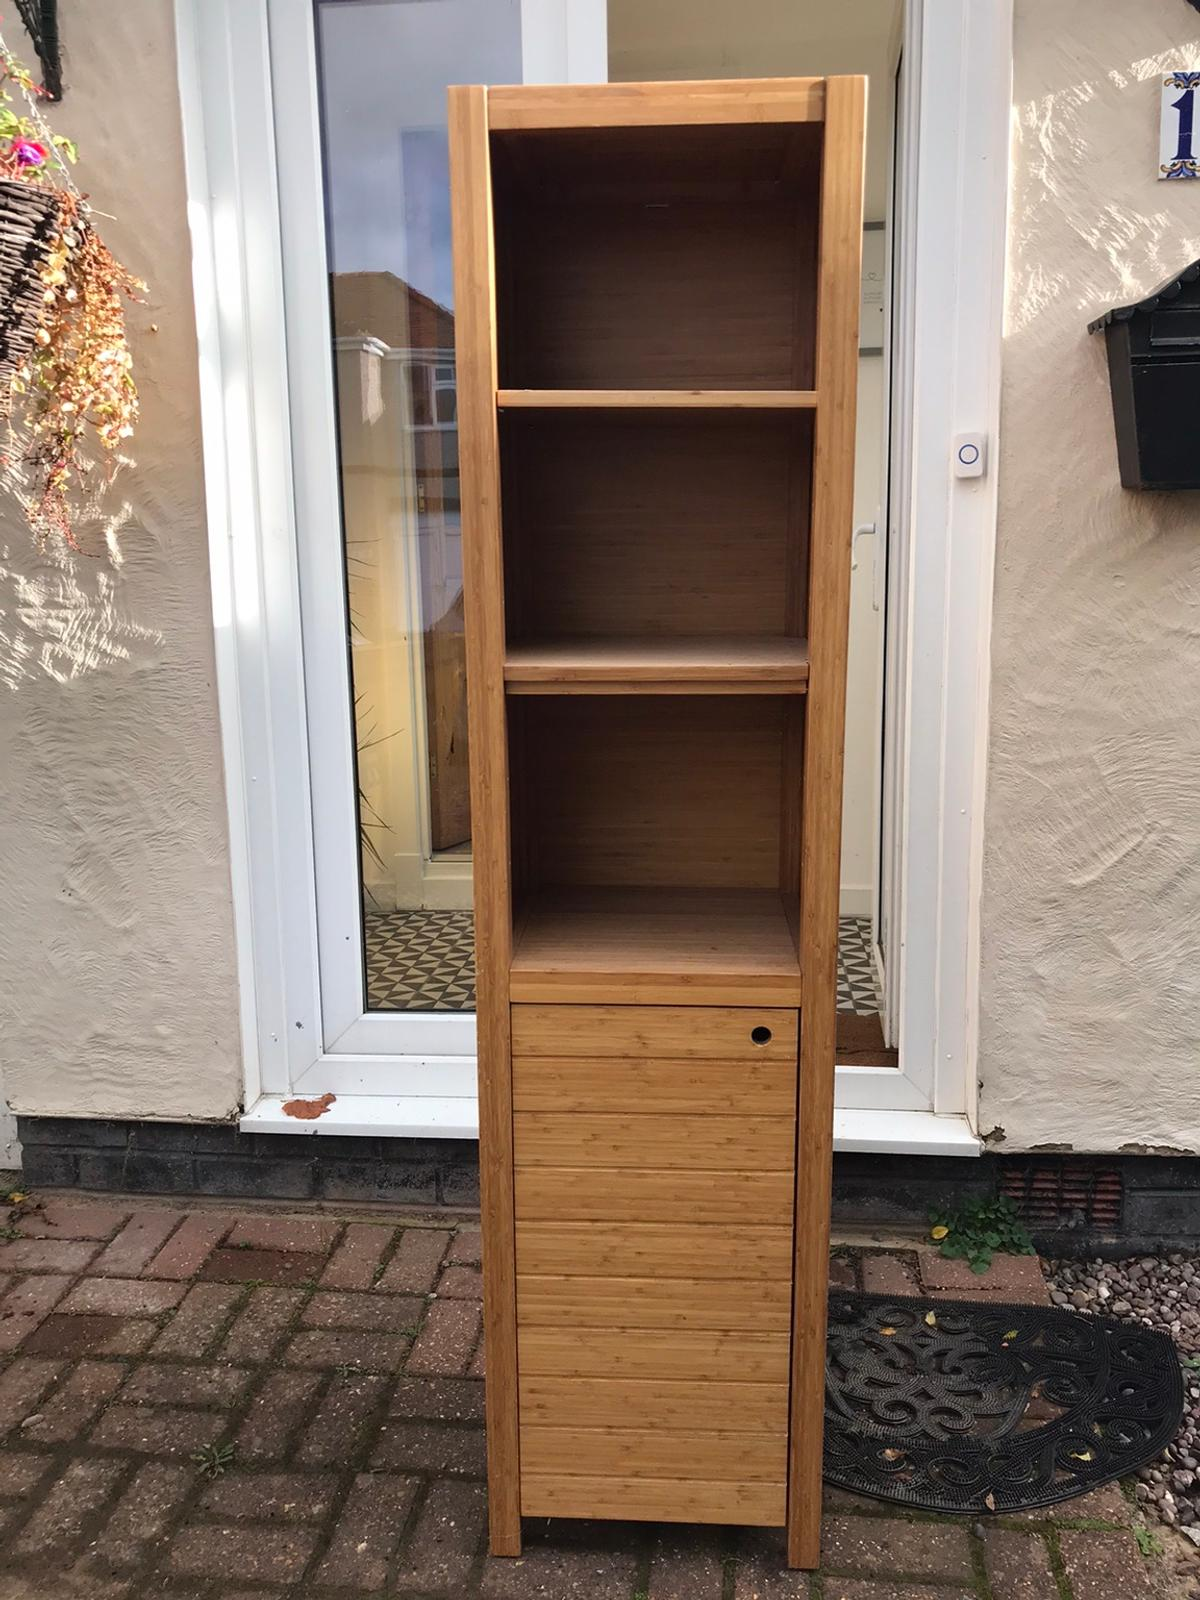 Marks And Spencer Tall Bathroom Cabinet In Ch48 Wirral For 40 00 For Sale Shpock